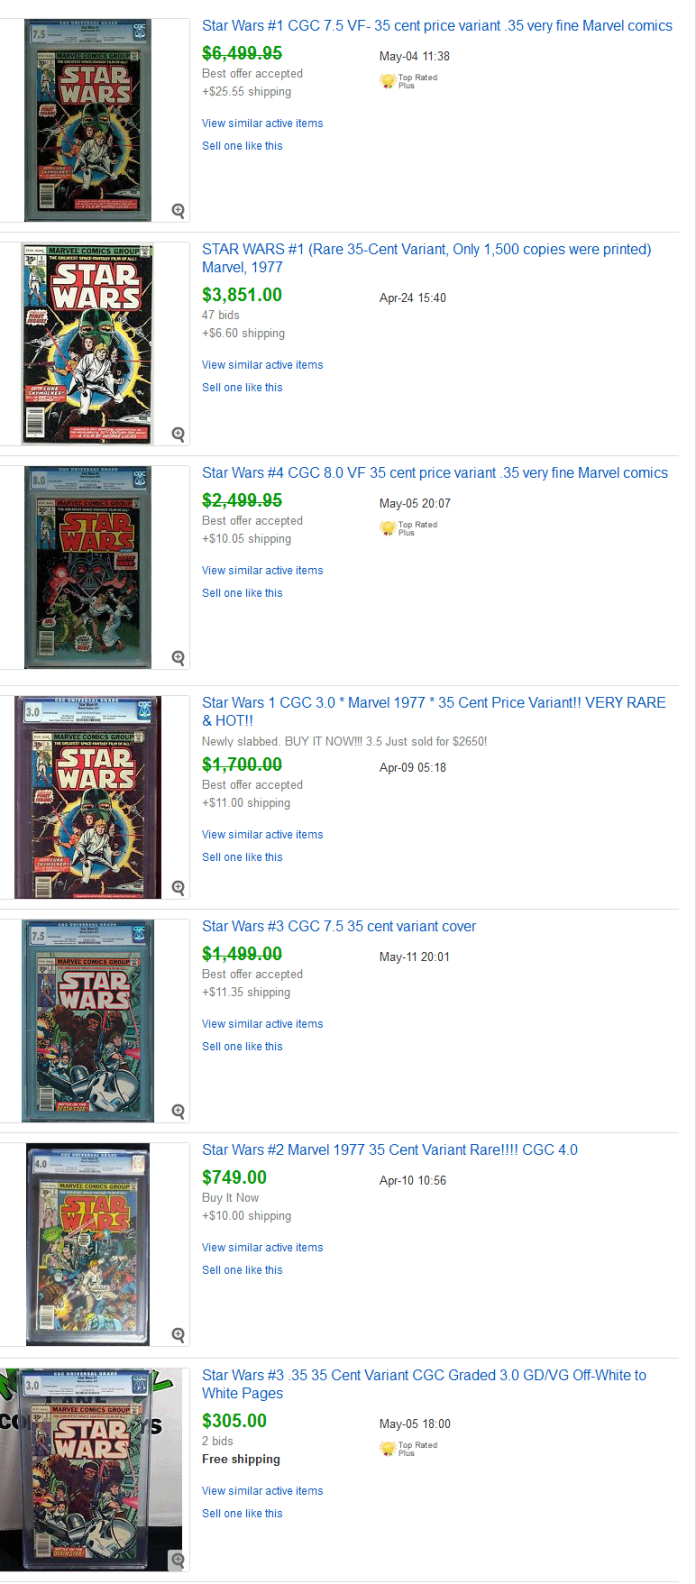 star-wars-35-cent-variant-s